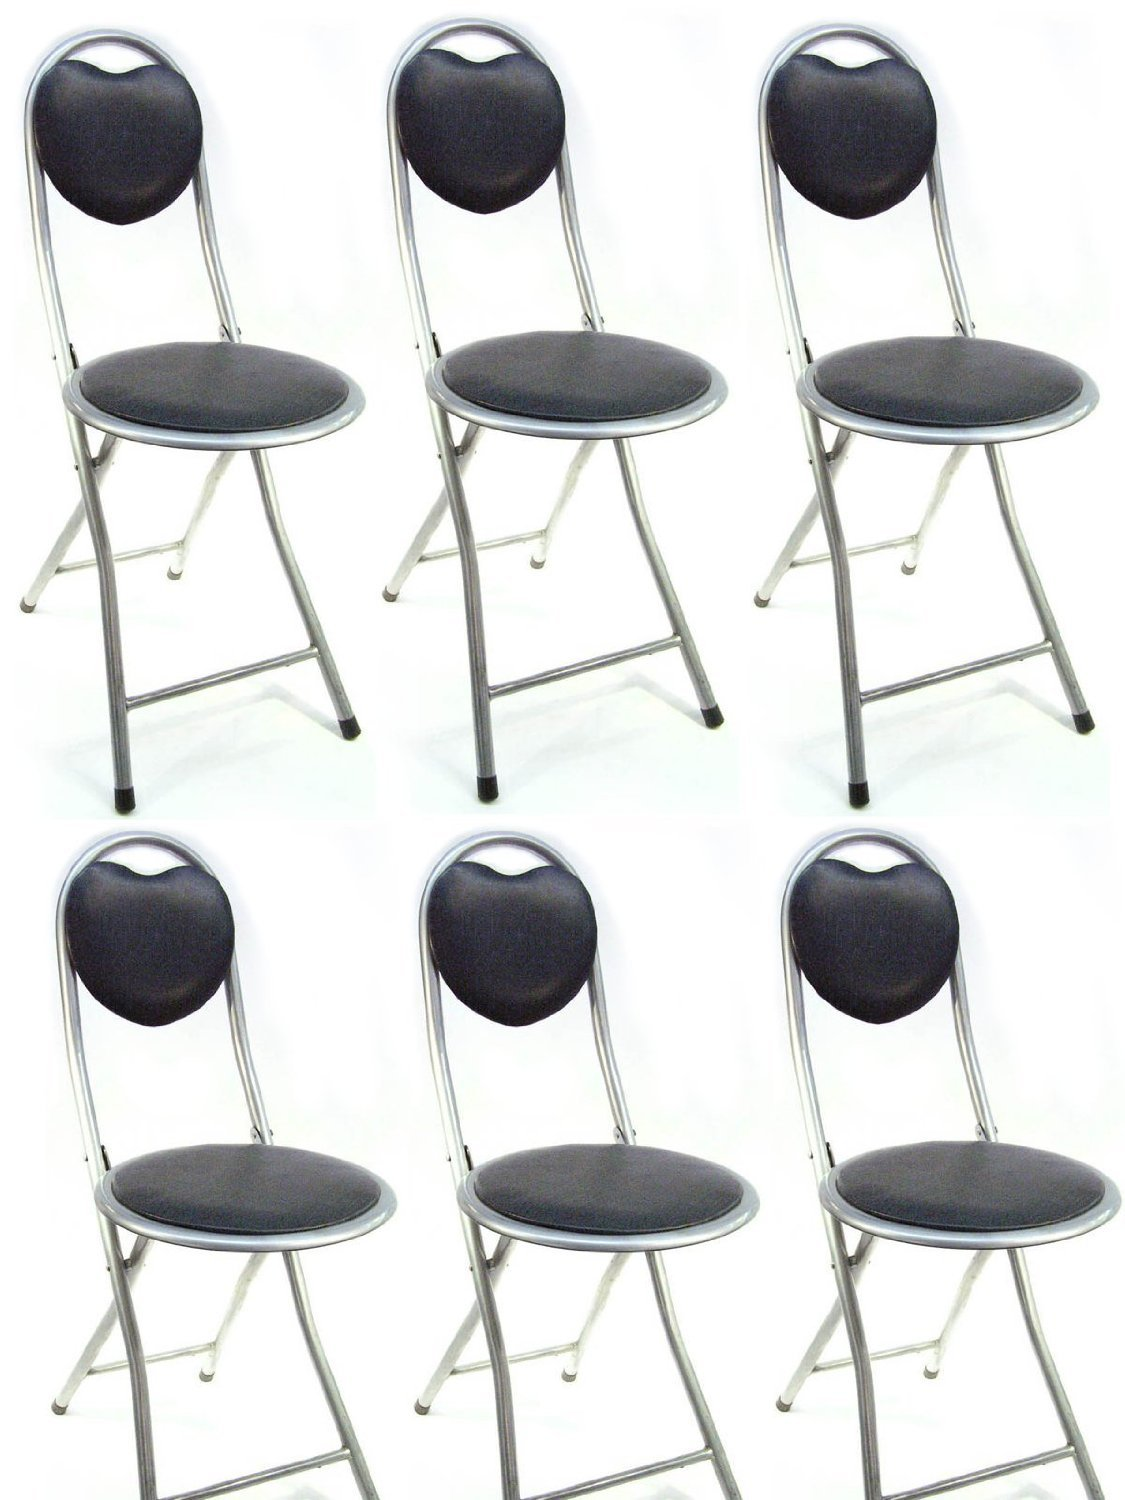 DLUX Small Folding Chairs